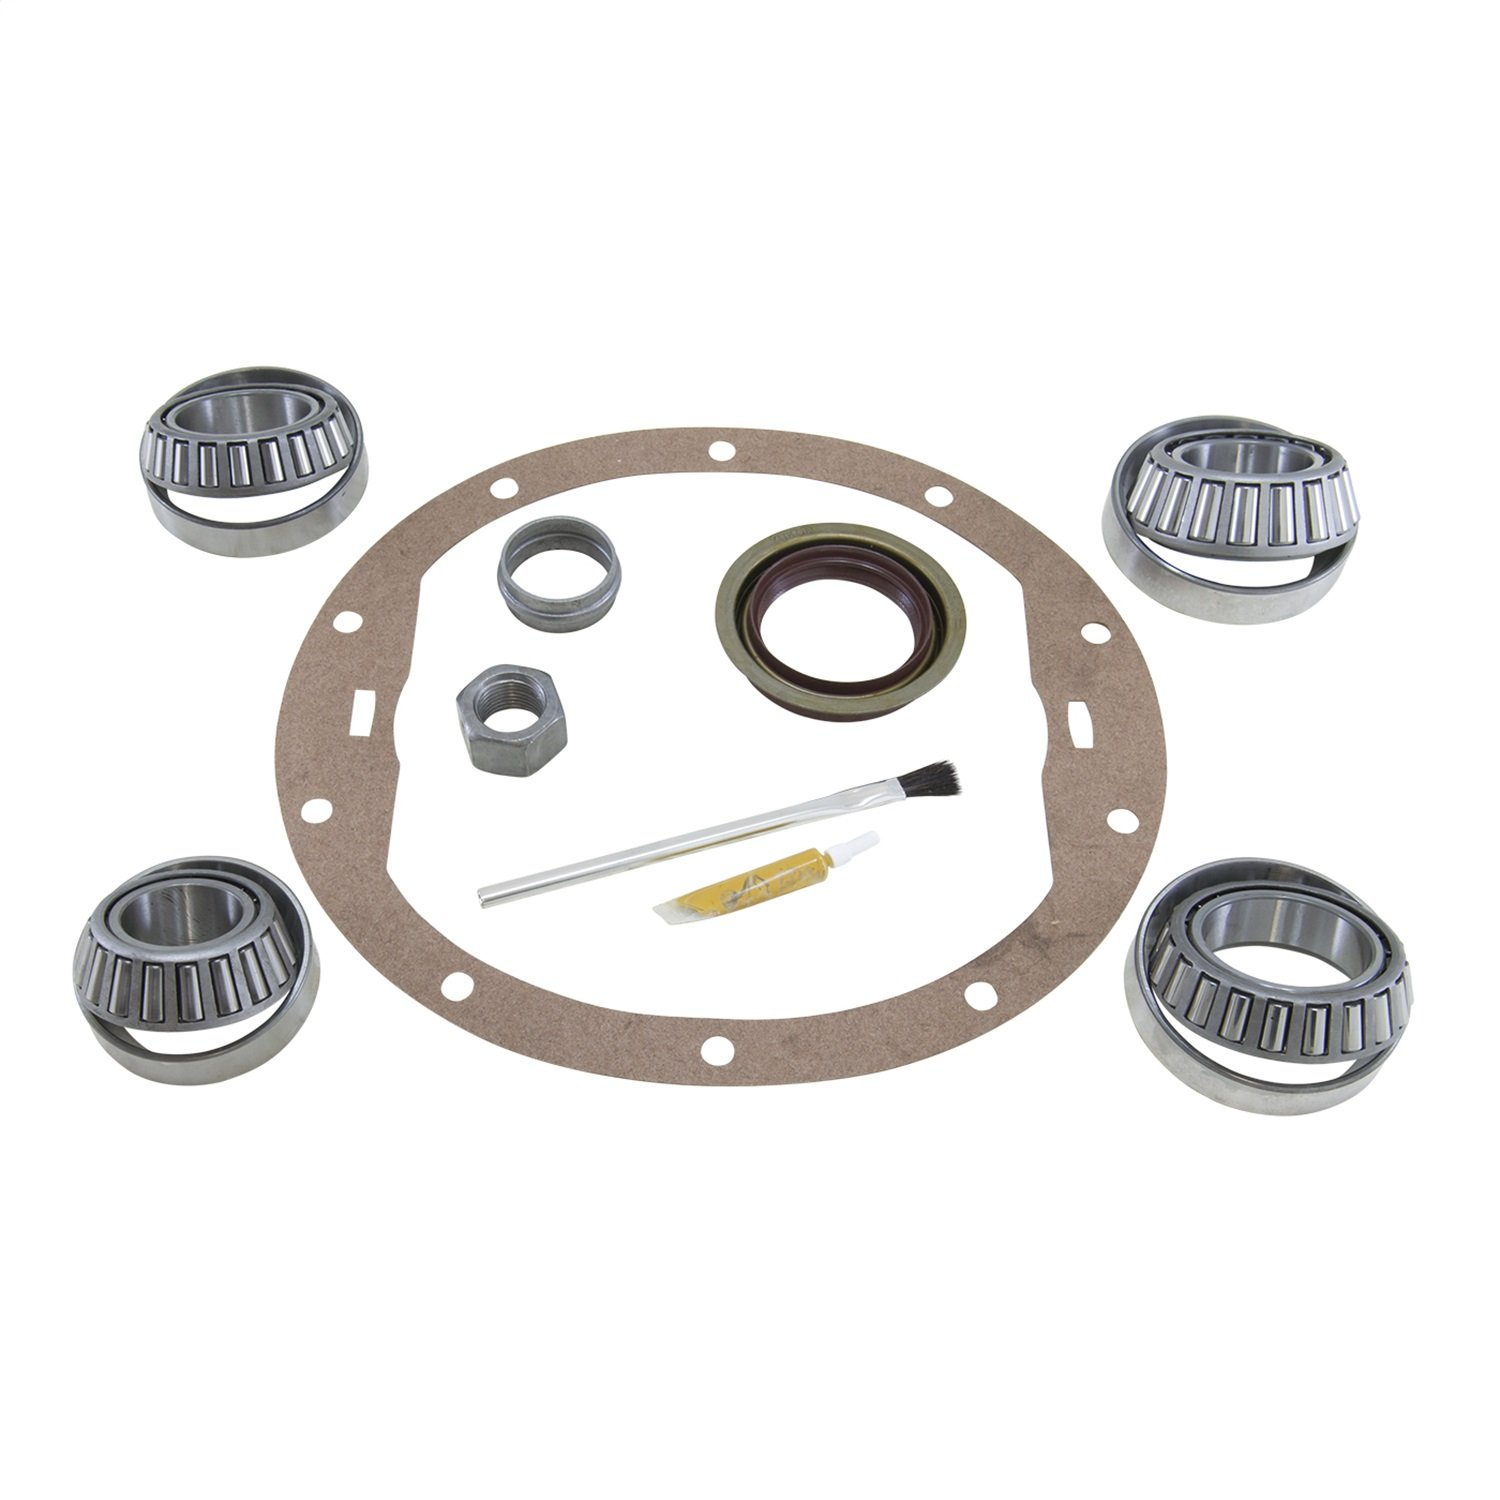 USA Standard Gear (ZBKGM8.2) Bearing Kit for GM 8.2'' Differential by USA Standard Gear